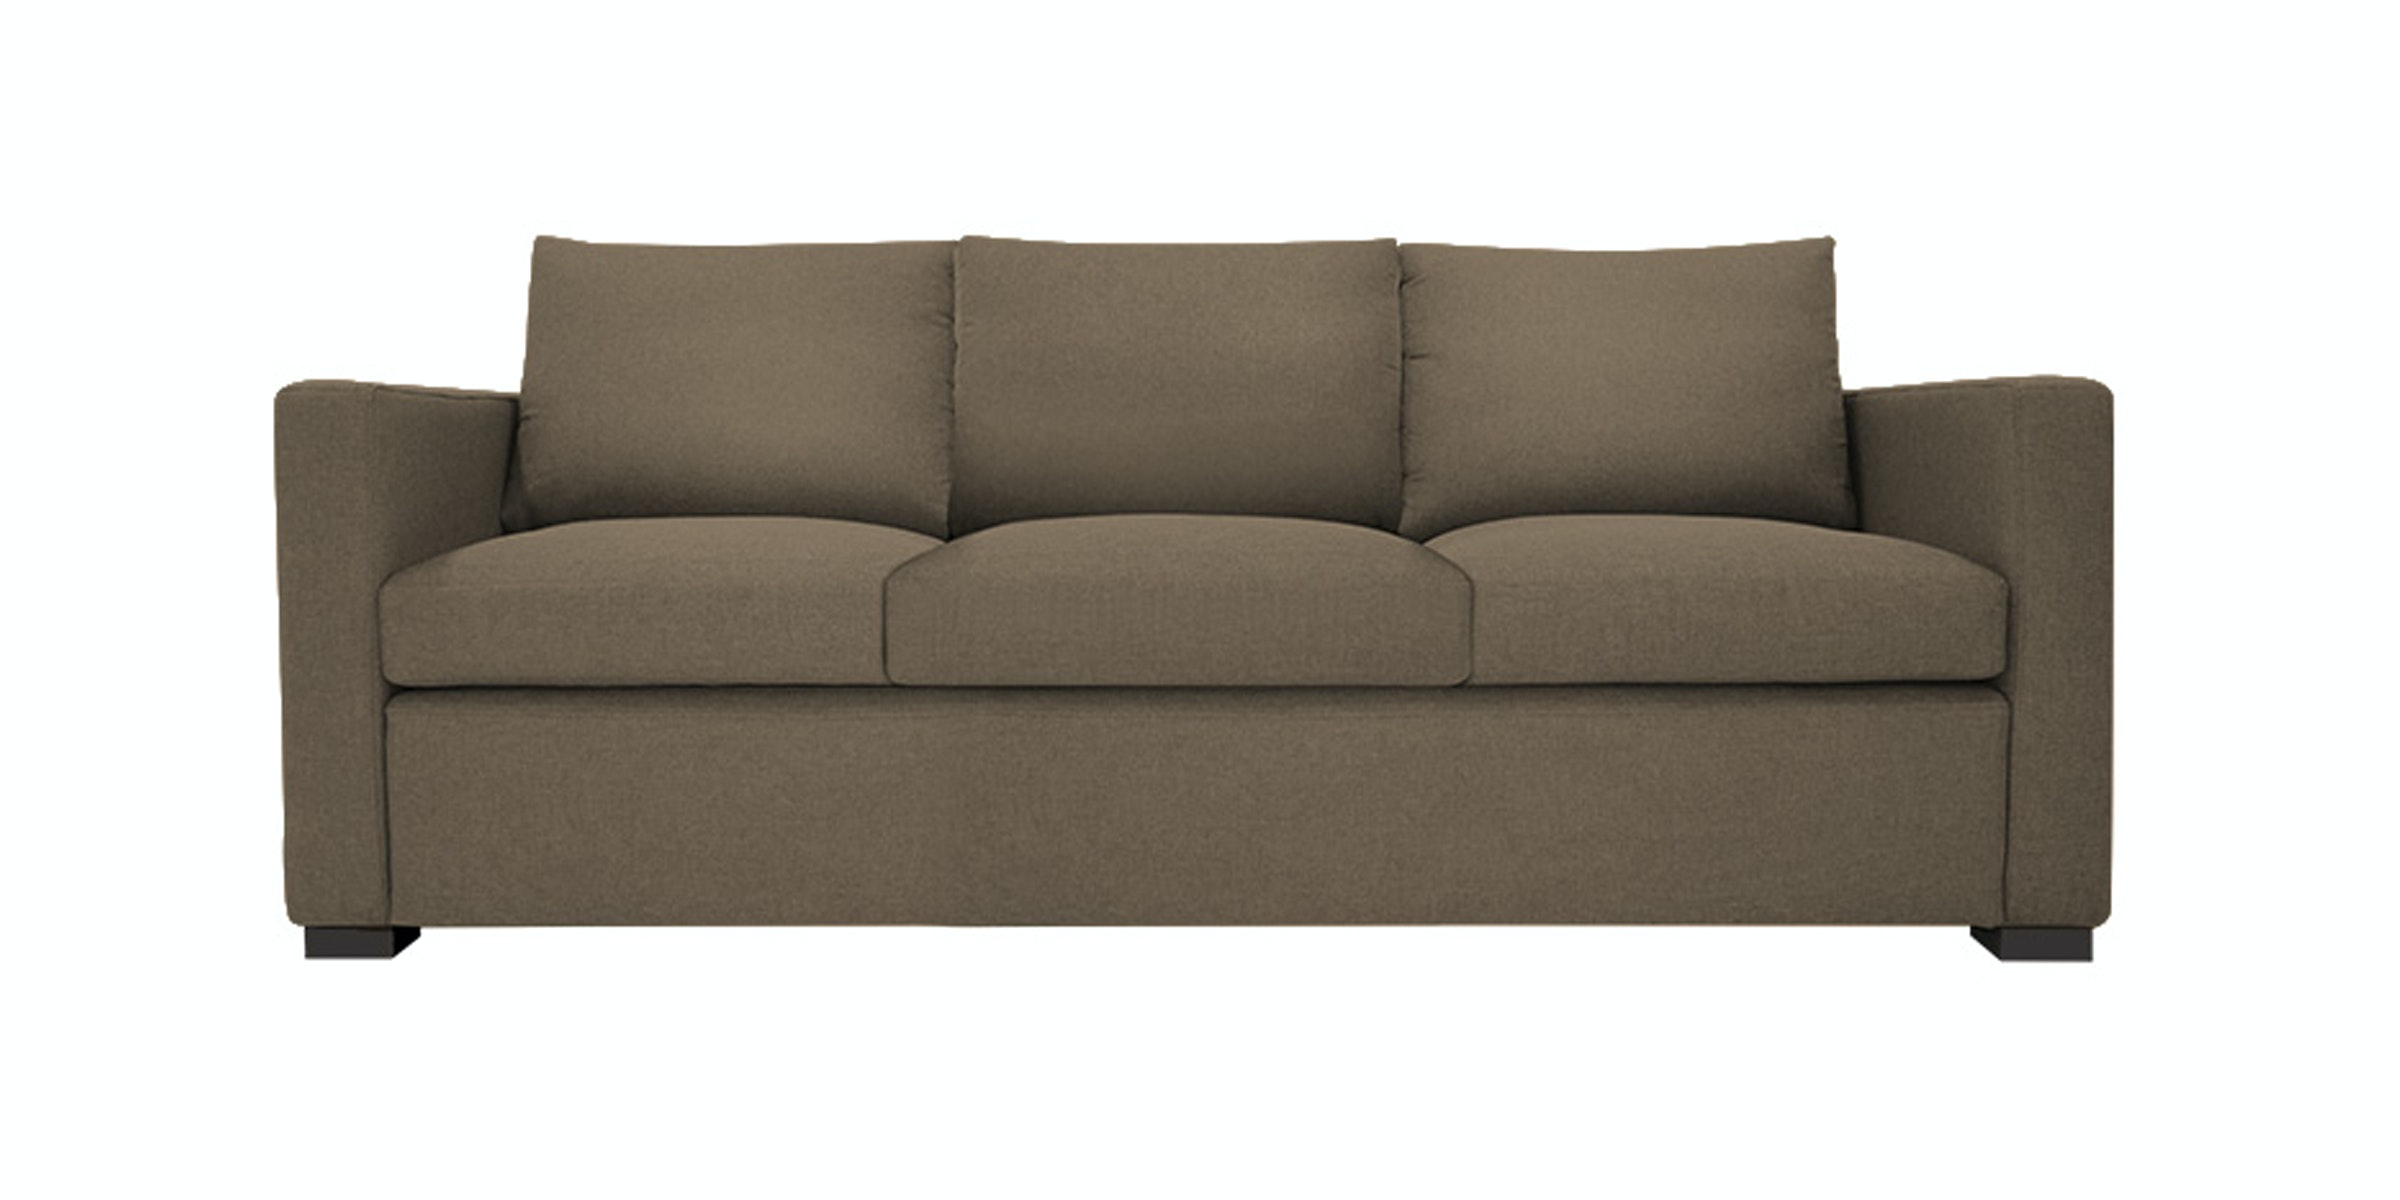 Nestudio Jeannie Johanson Three Seater Sofa Tuscan Tan